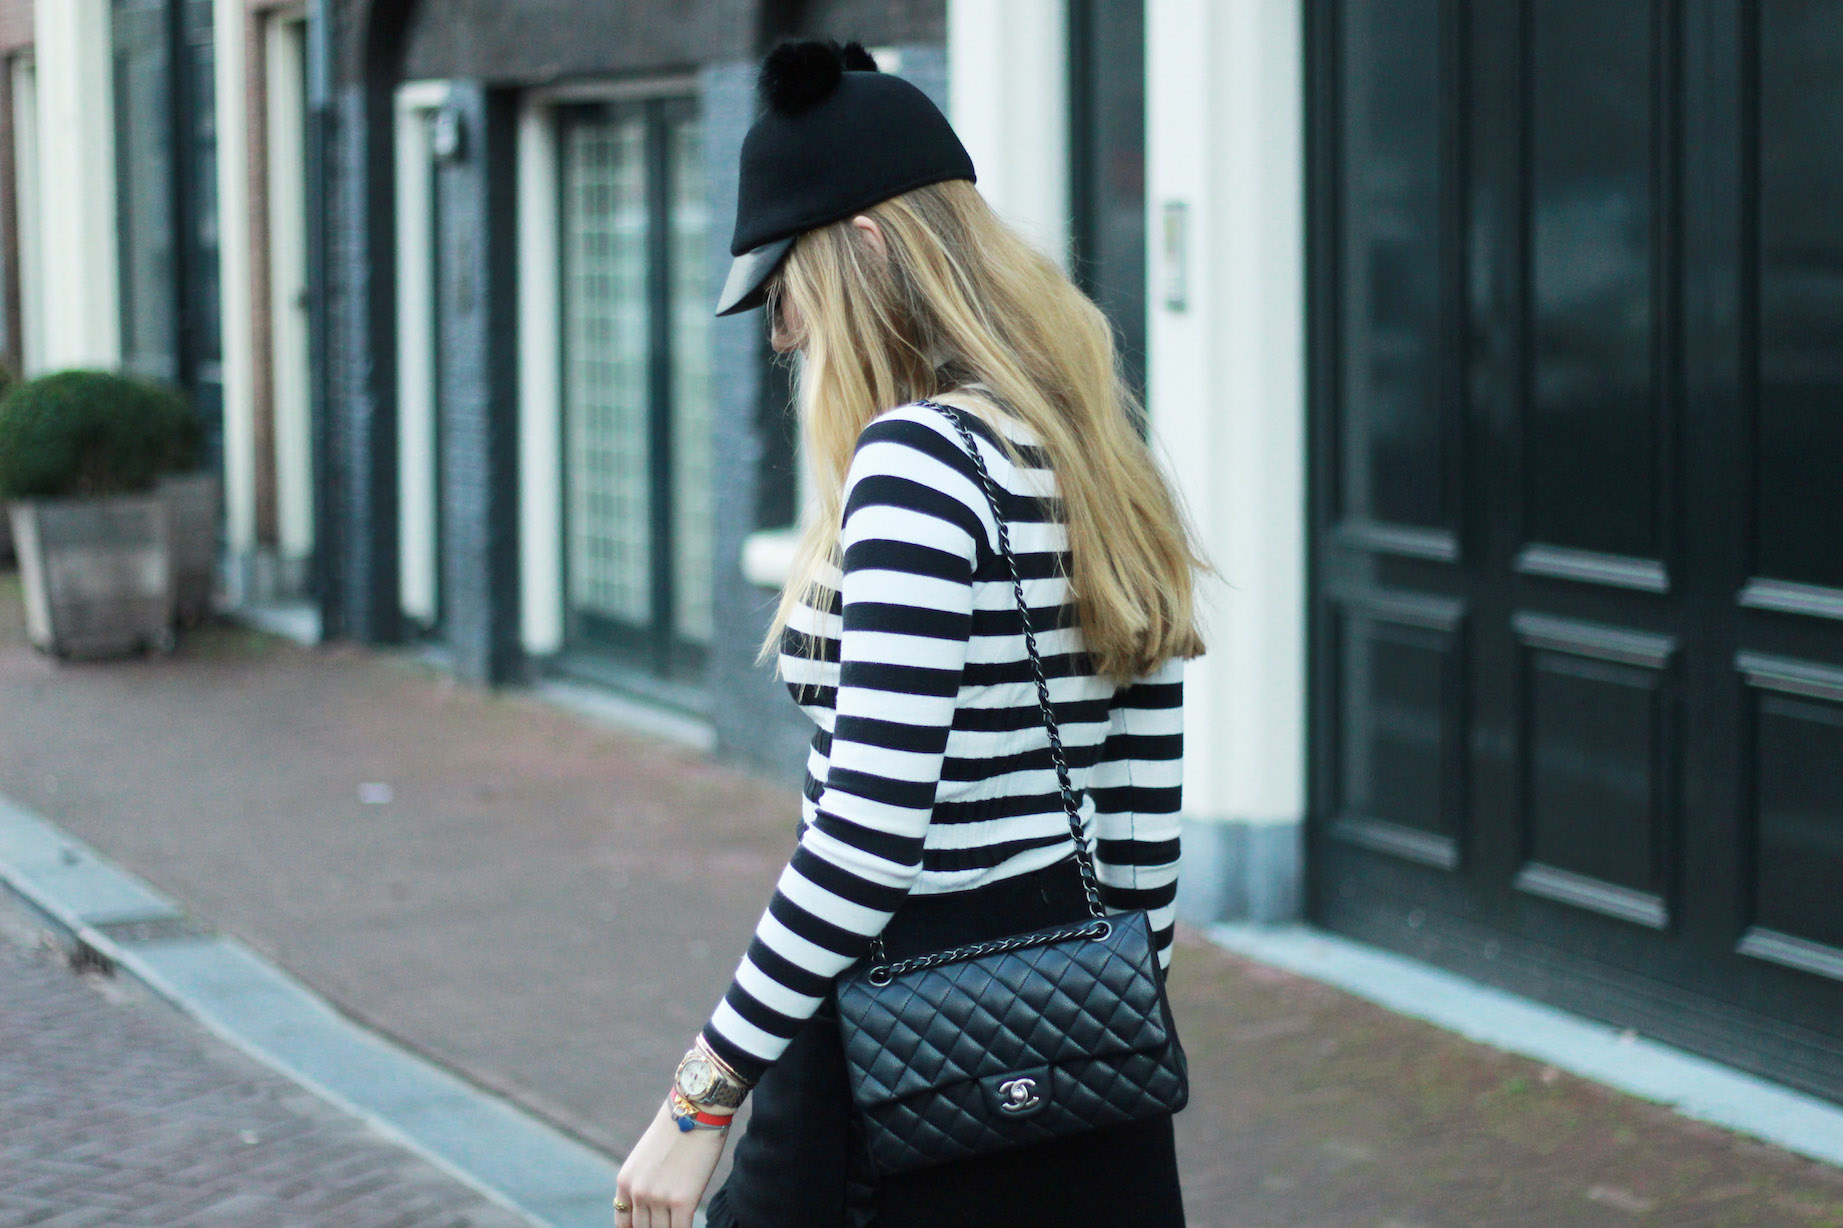 floortjeloves, micket, wolford, cos, zara, asos, H&M, the difference between dreaming and doing, dreaming and doing, chanel, chanel classic, chanel bag, stripes